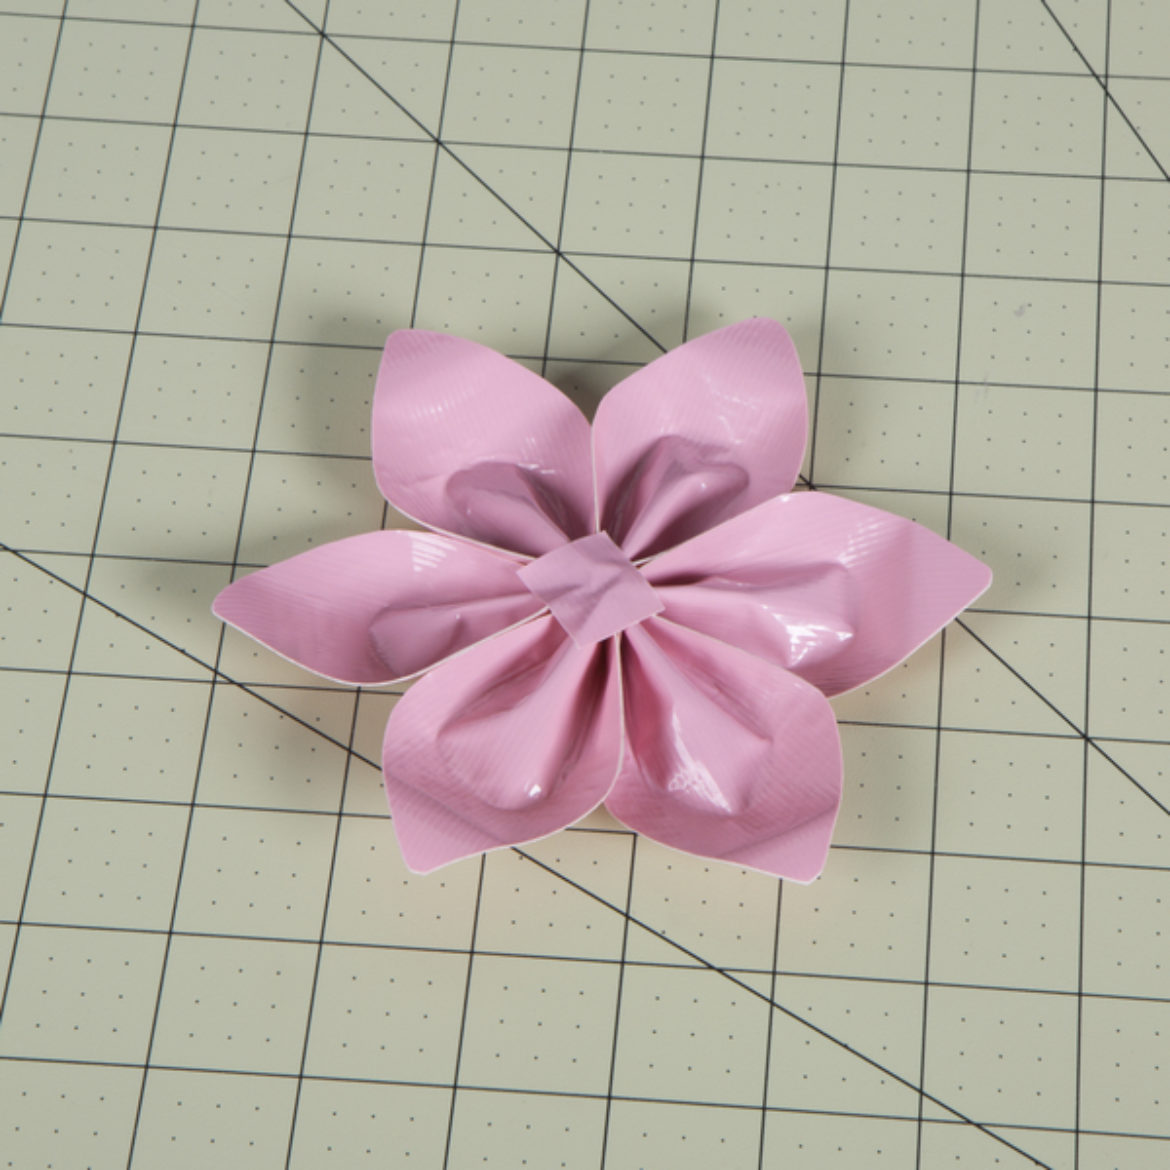 excess string cut off and taped into place on the back of the flower